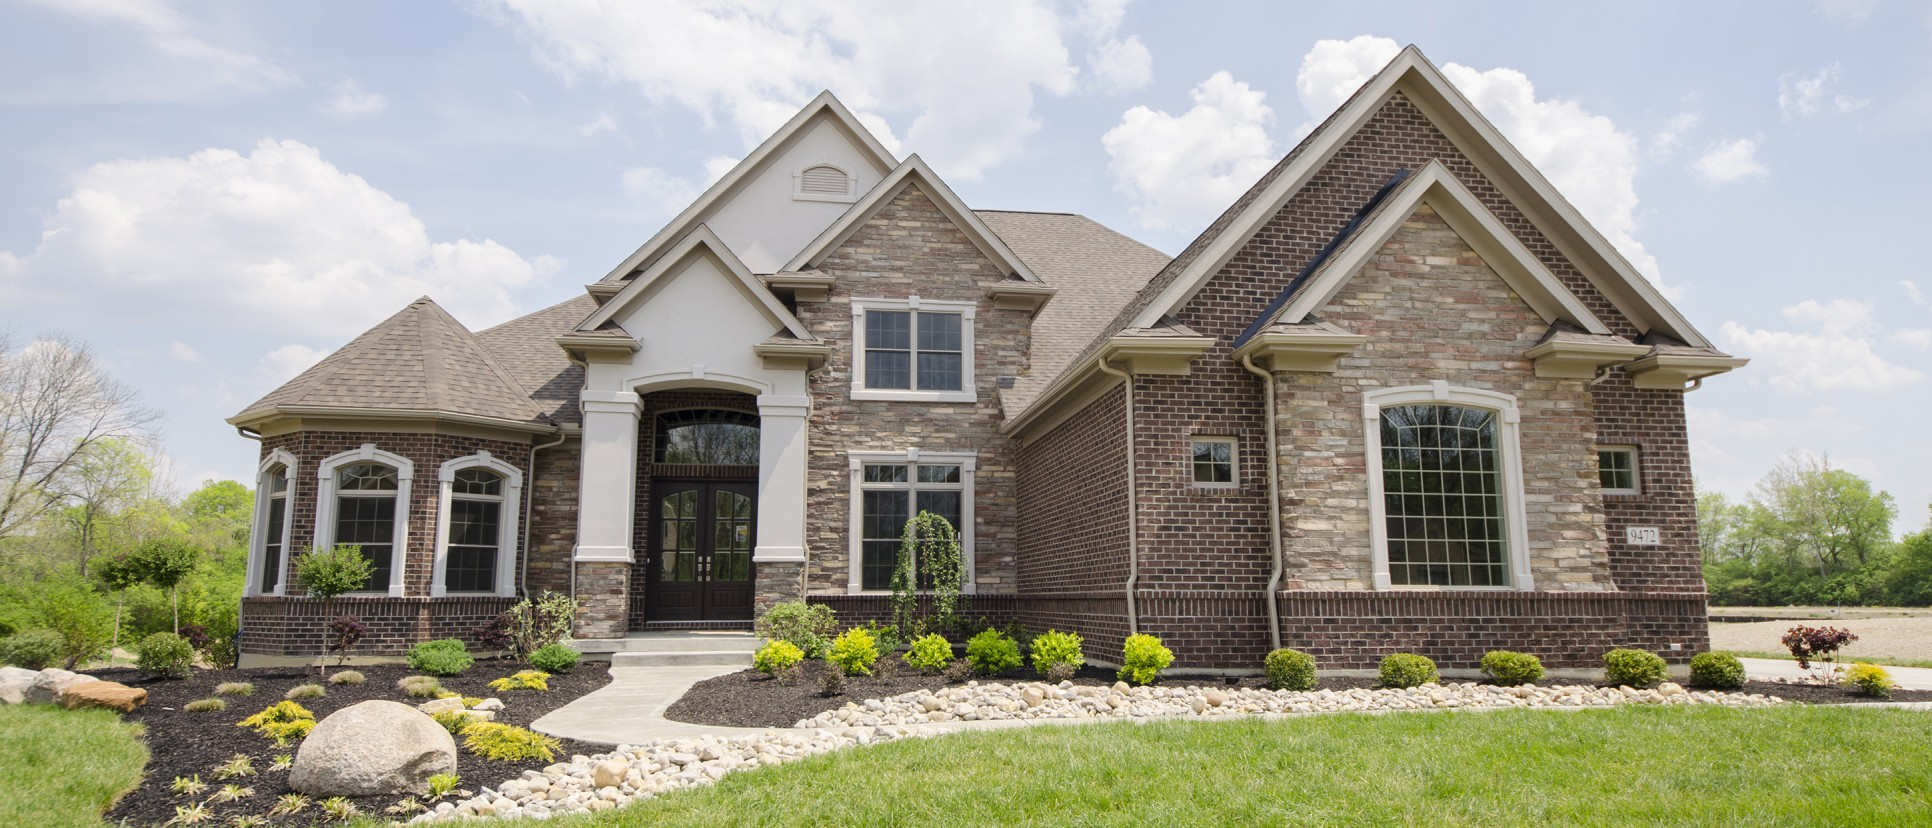 Brick And Stone Exterior Combinations Brick Stone Home Exteriors Choosing Exterior Brick Stone